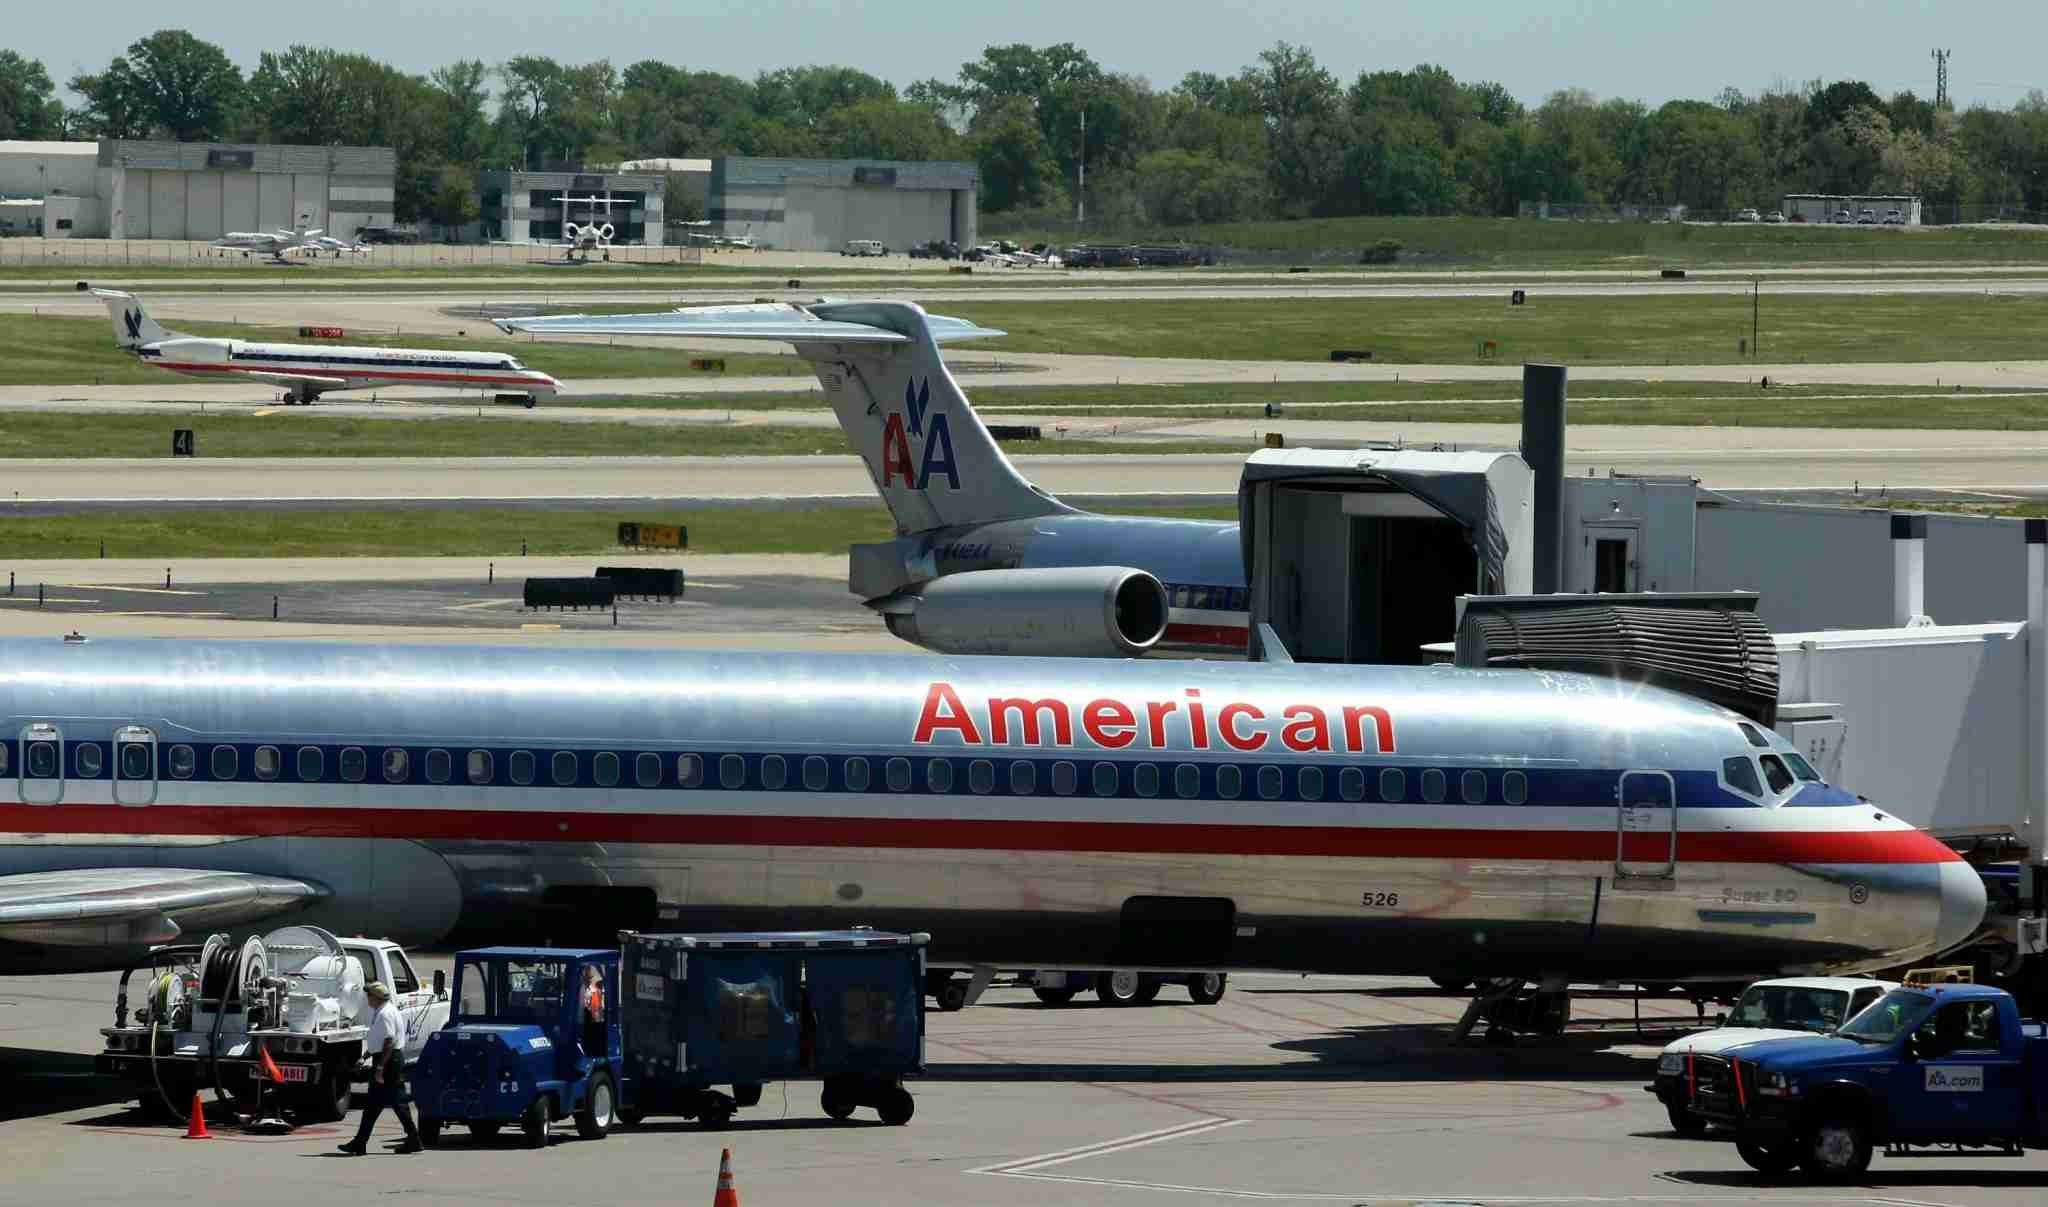 American Airlines aircraft are seen at St. Louis-Lambert International Airport in 2008. (Photo by Whitney Curtis/Bloomberg via Getty Images)